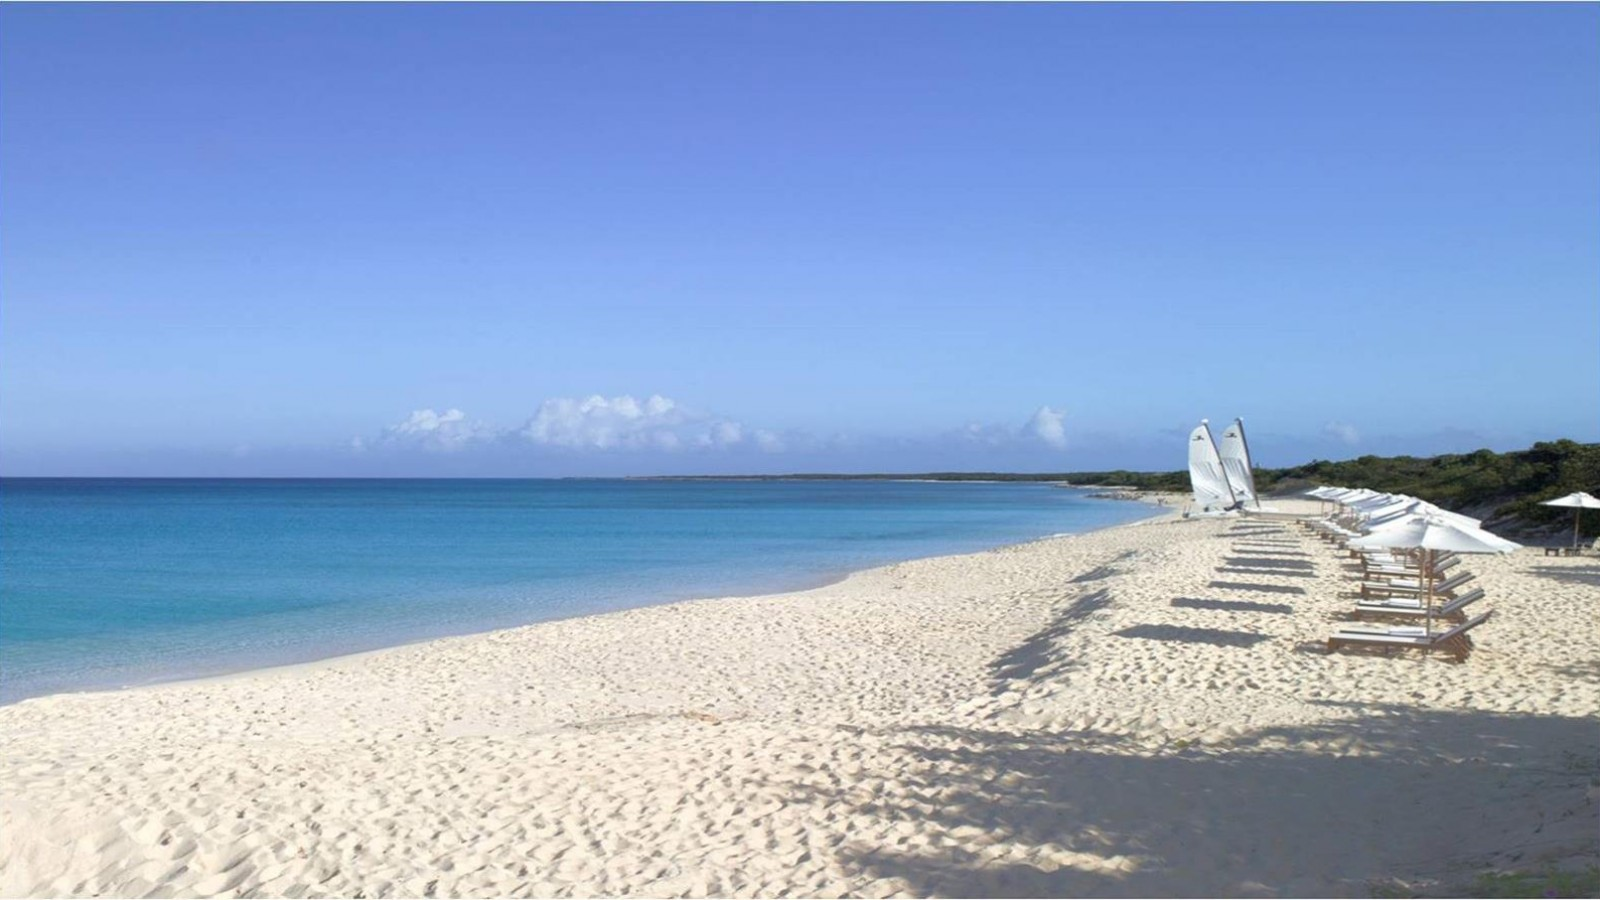 playa_arena_blanca_Turks_and_Caicos_América